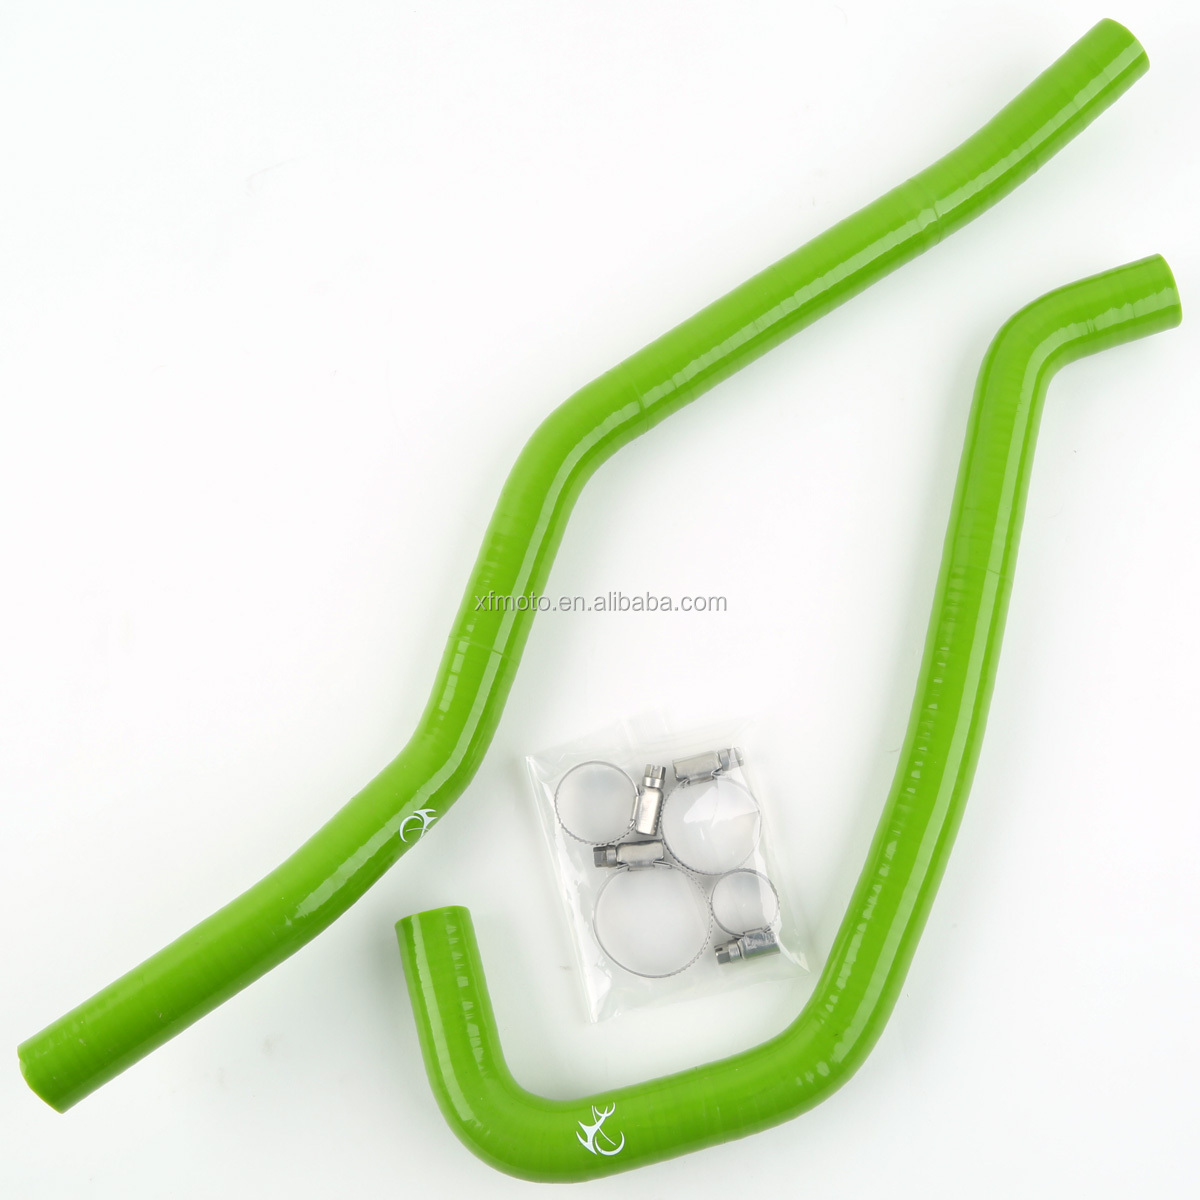 Green Motorcycle Silicone Radiator Hose For Yamaha Raptor 700 2006-2010 07 08 09